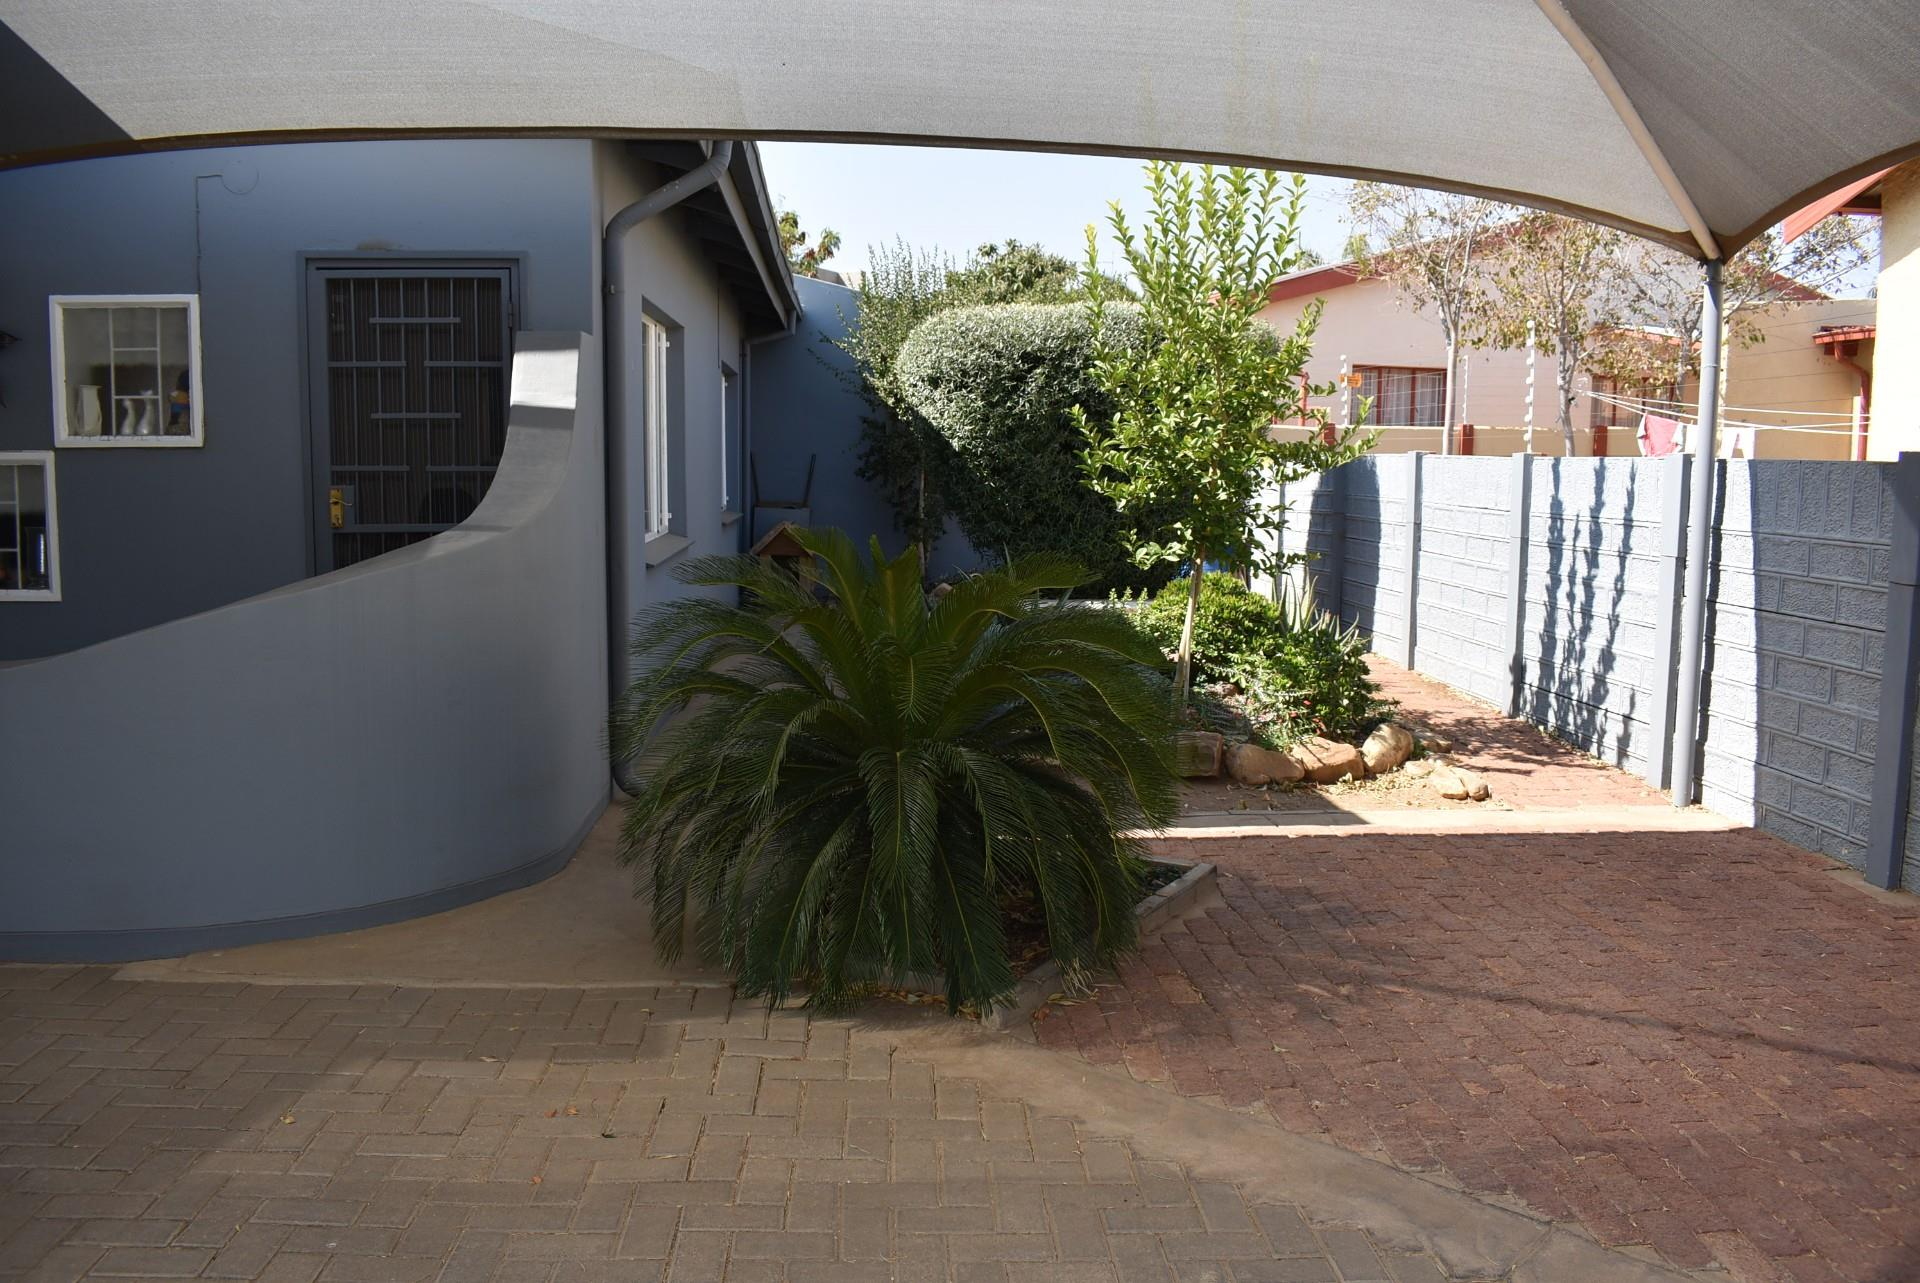 2 Bedroom House To Rent in Cimbebasia